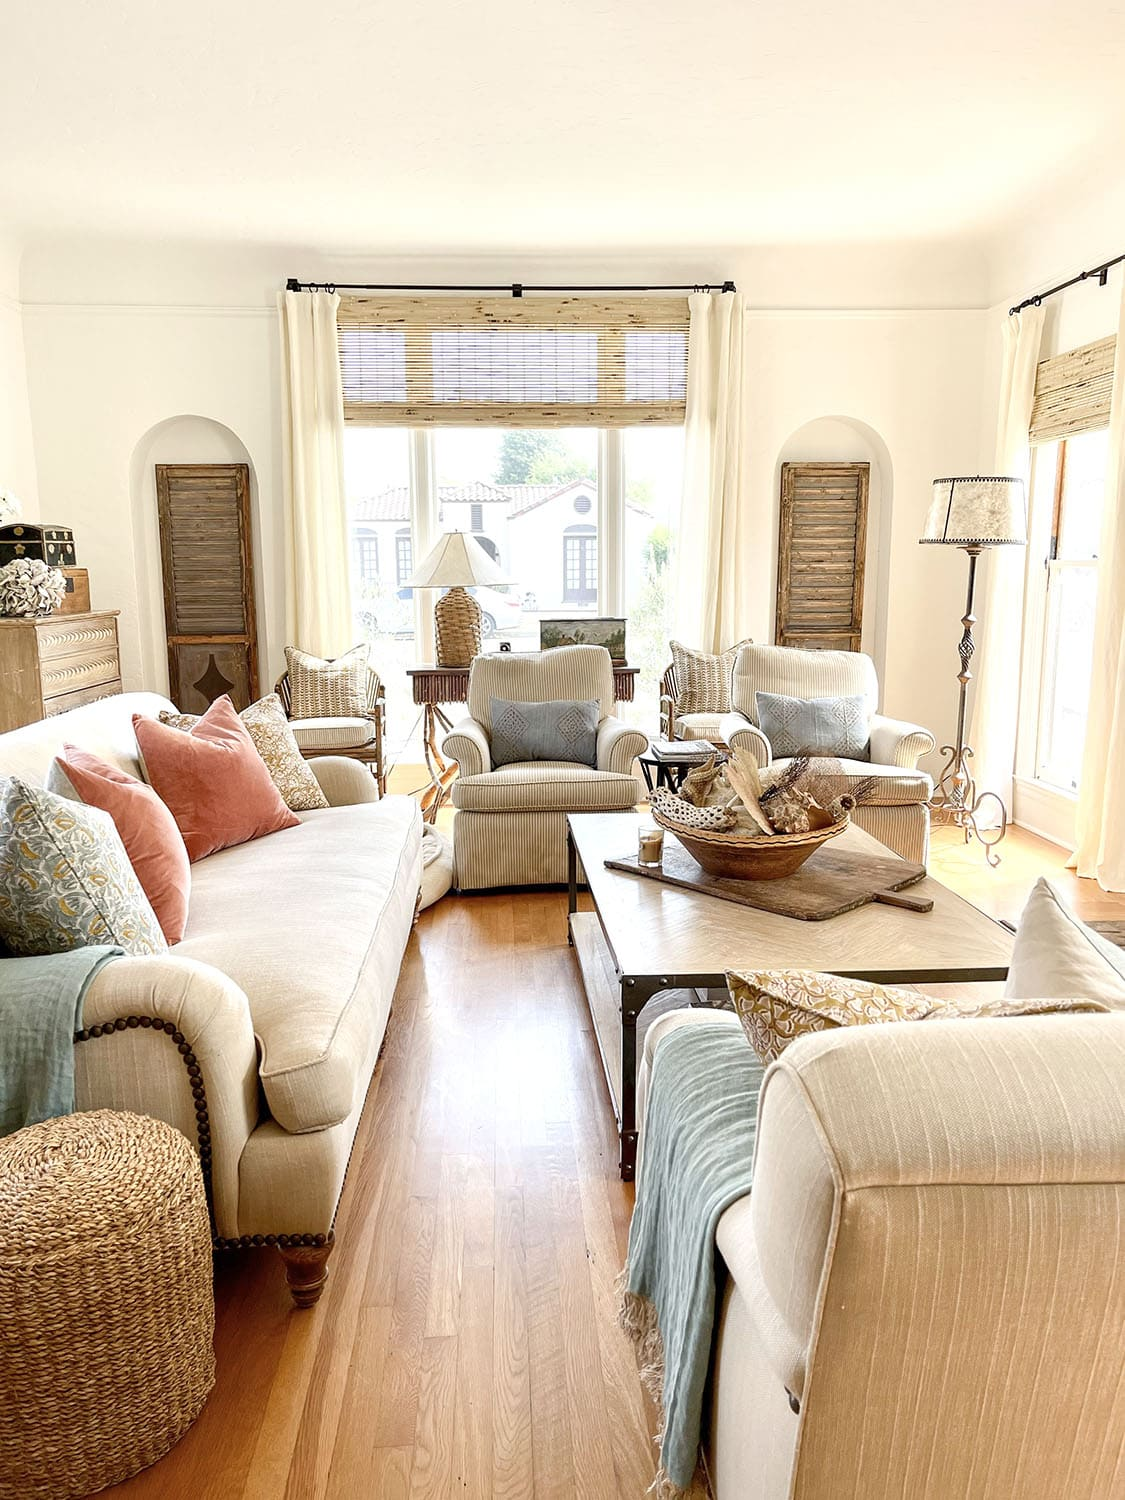 cindy hattersley fixer upper living overall